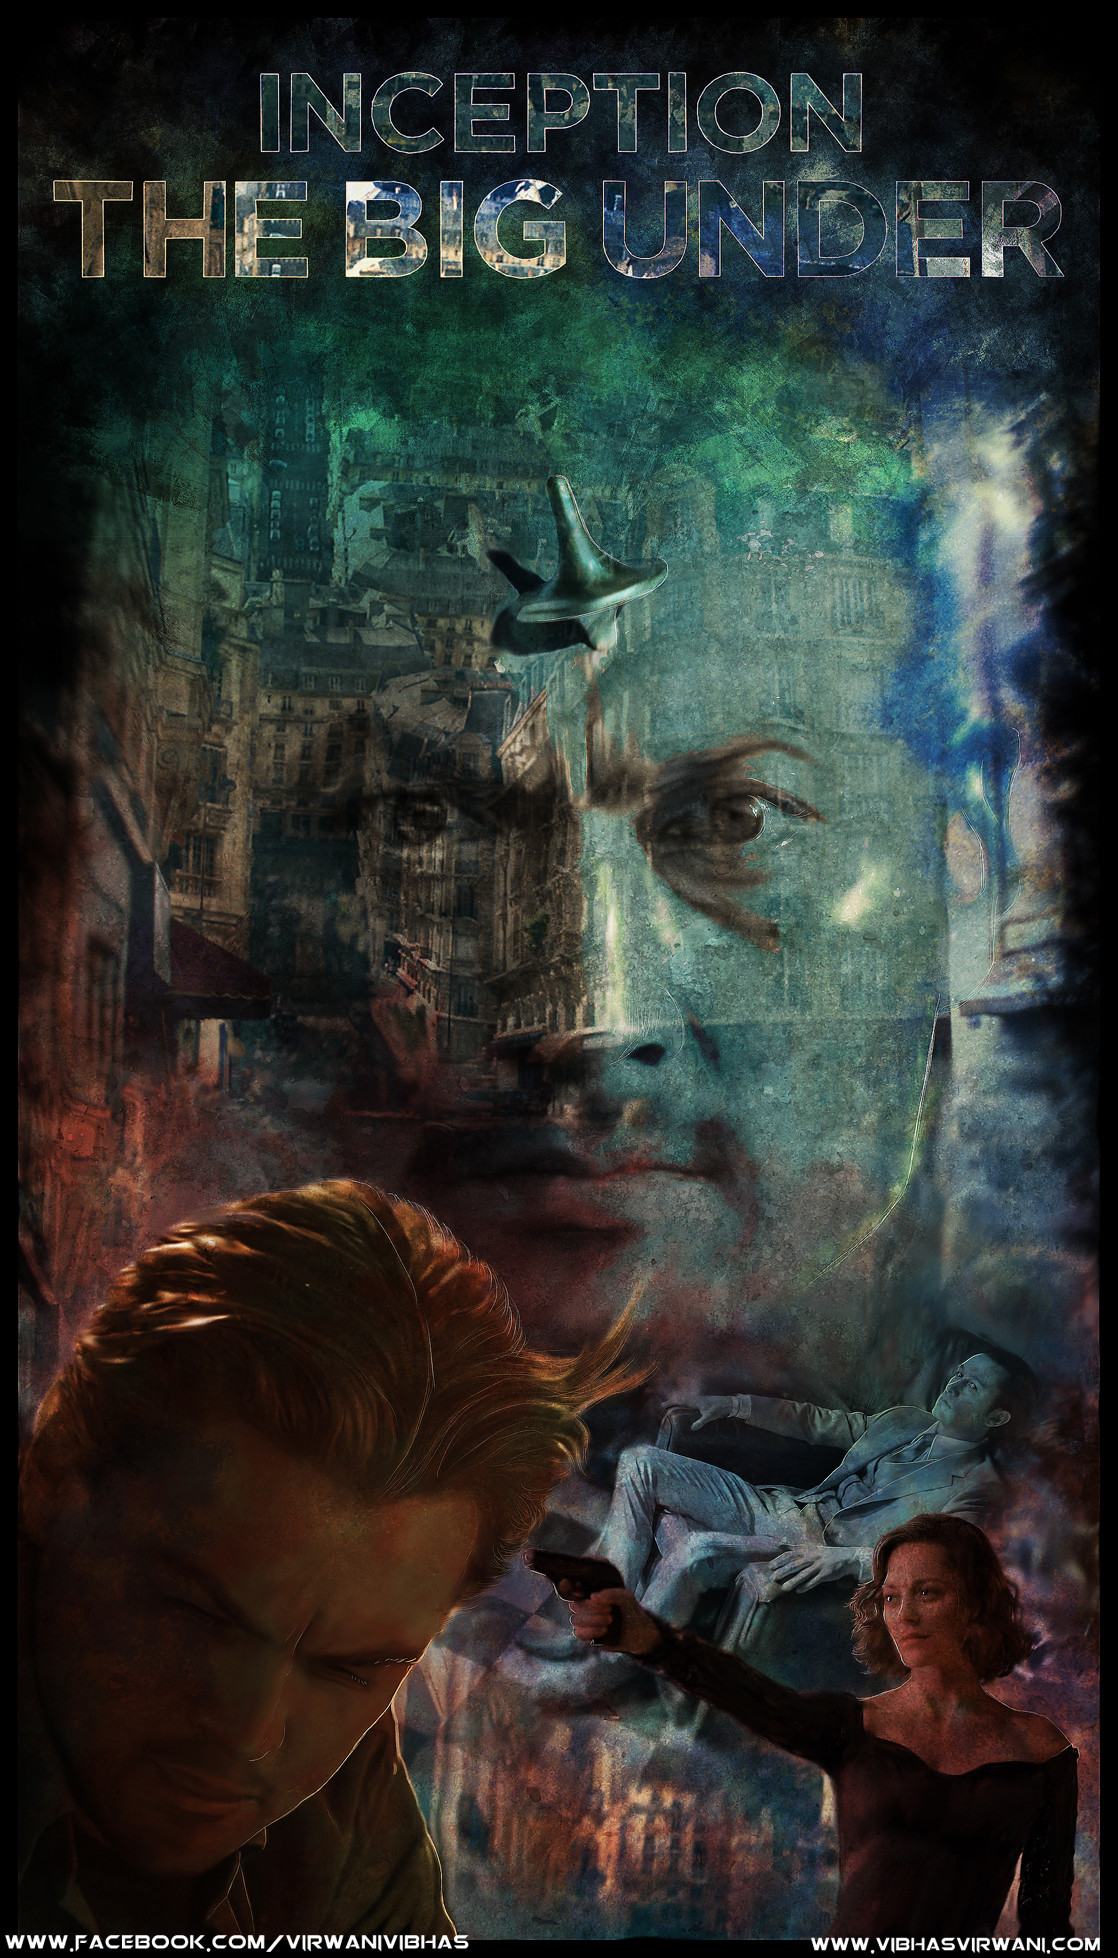 Vibhas virwani inception comic cover deviantart contest entry by vibhas virwani 2